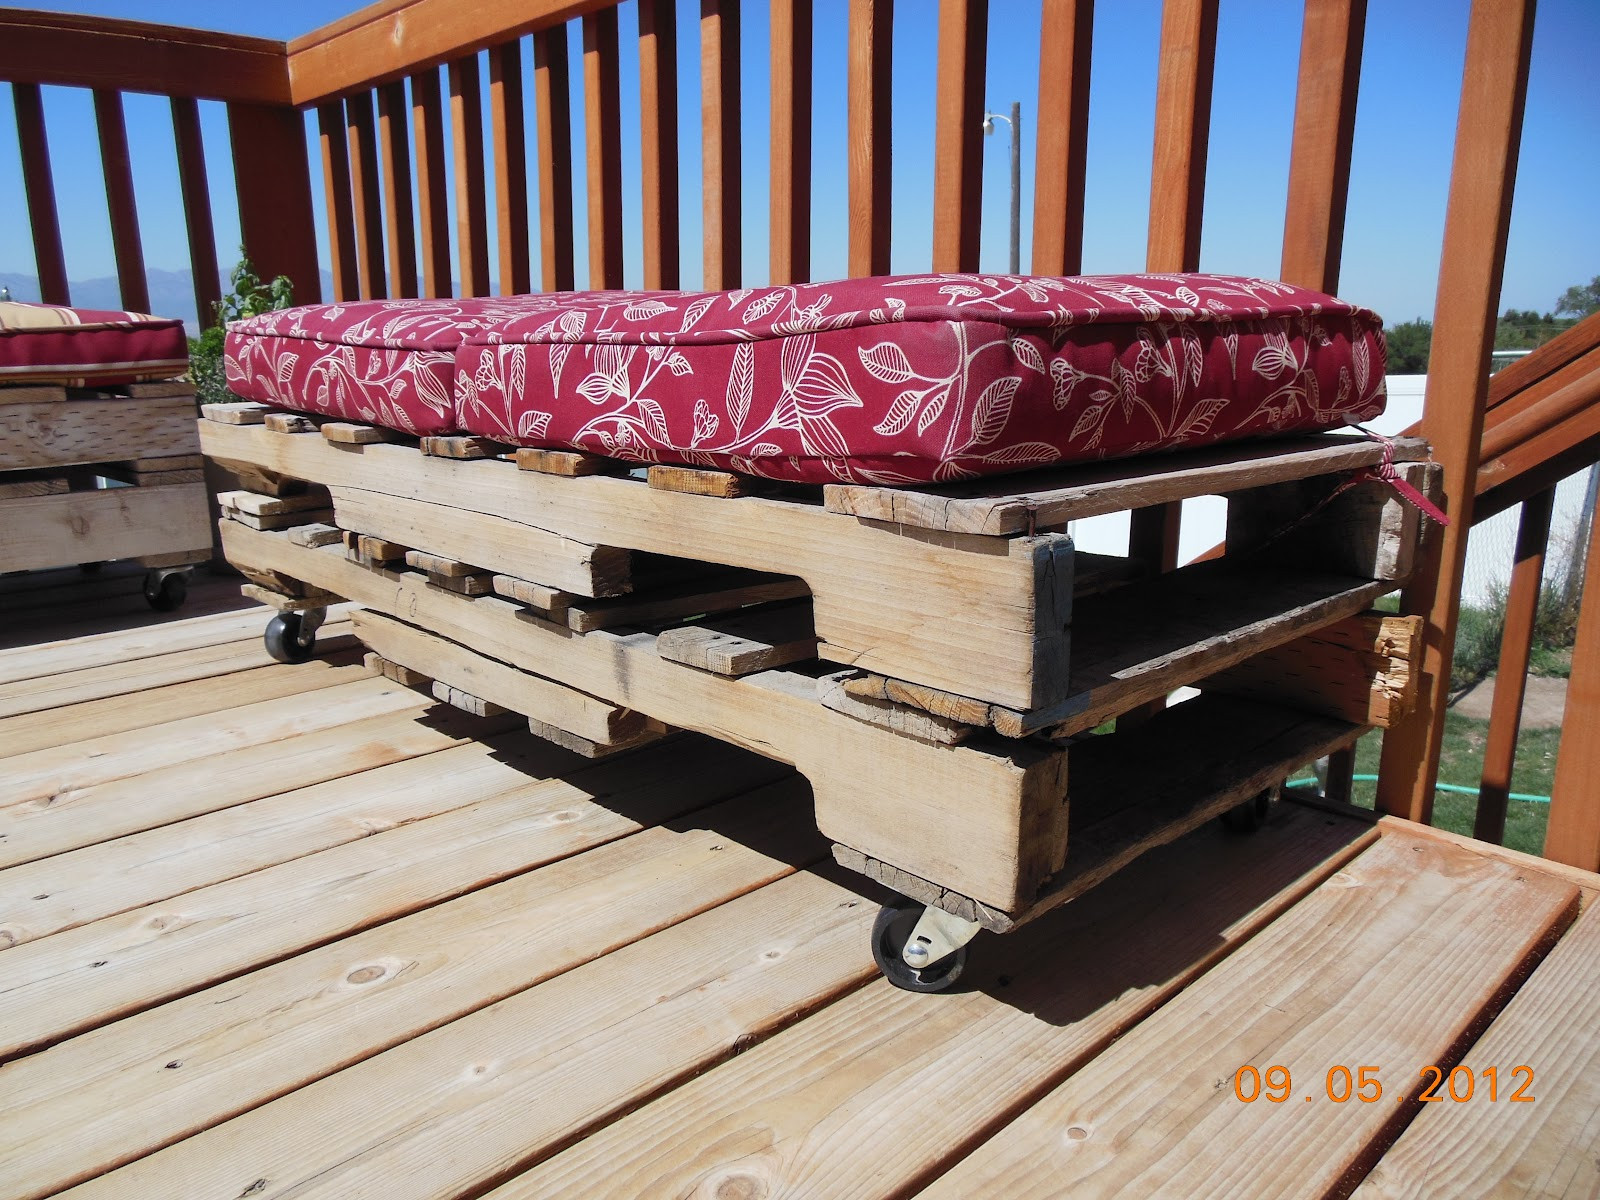 Best ideas about Pallet Patio Furniture . Save or Pin 4 Growing Boys Pallet Patio Furniture Now.